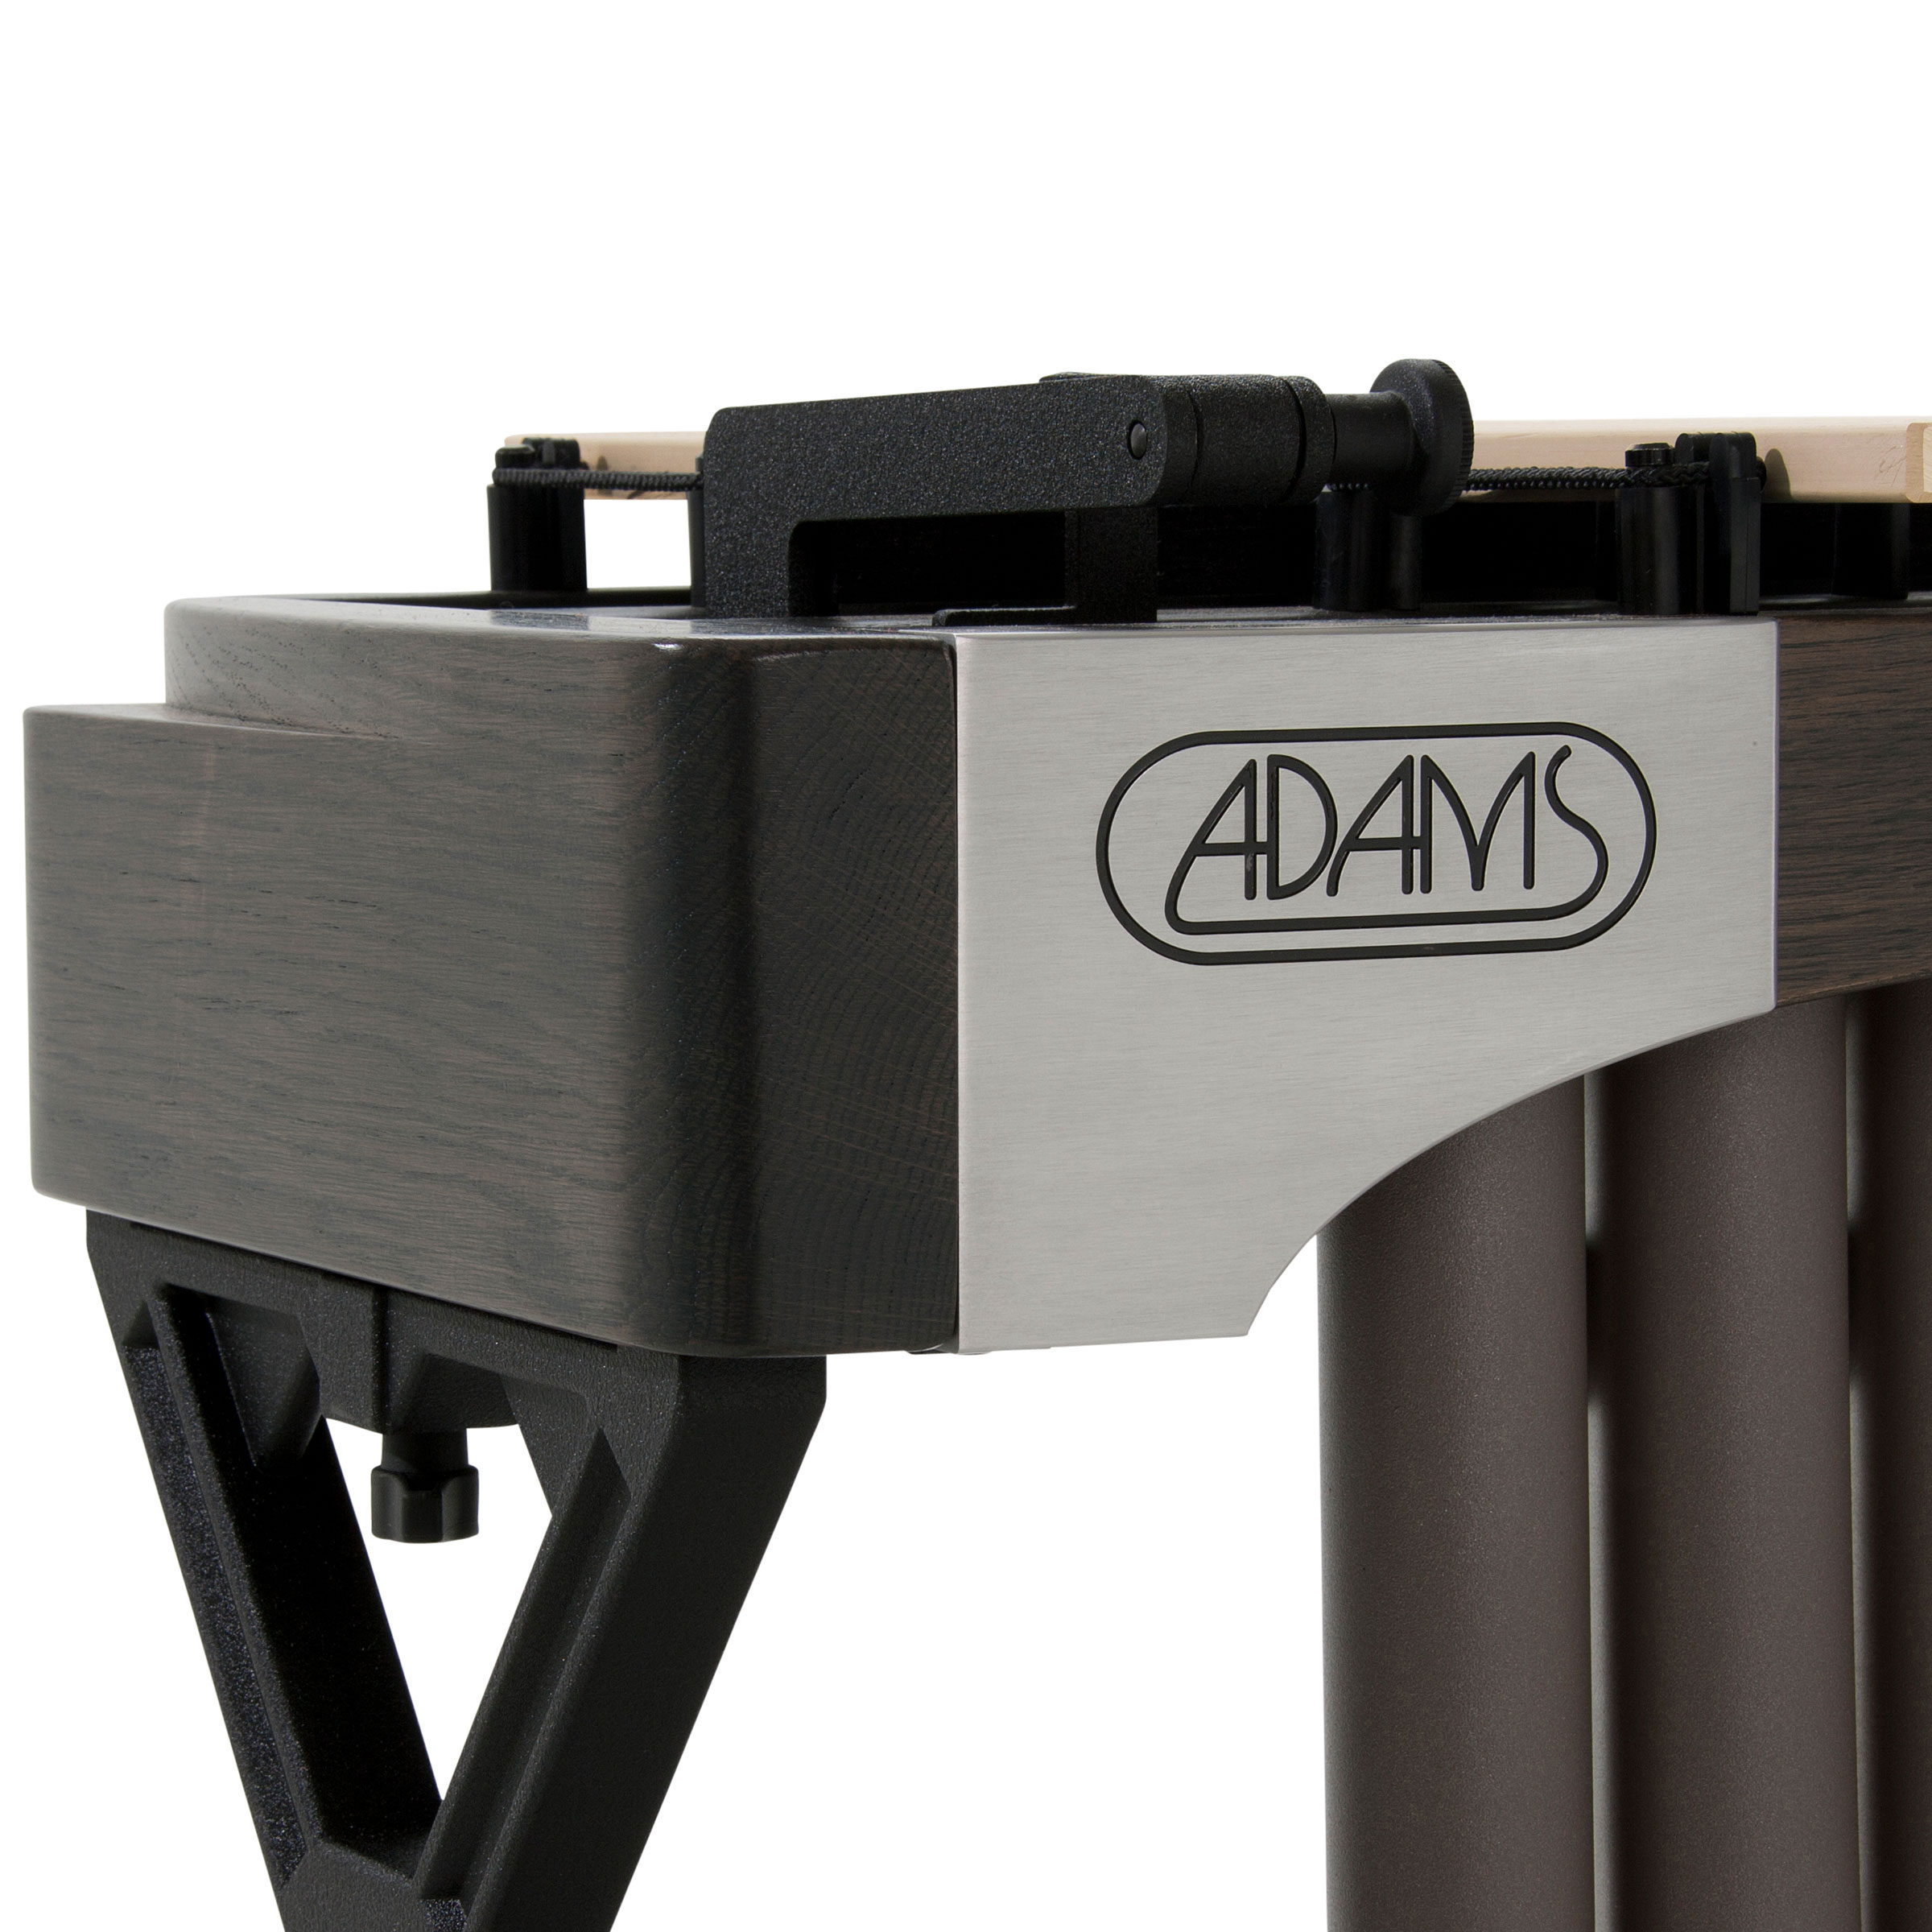 Adams 4.0 Octave Alpha Series Vibraphone with Gold Bars, Traveler Frame, and Motor